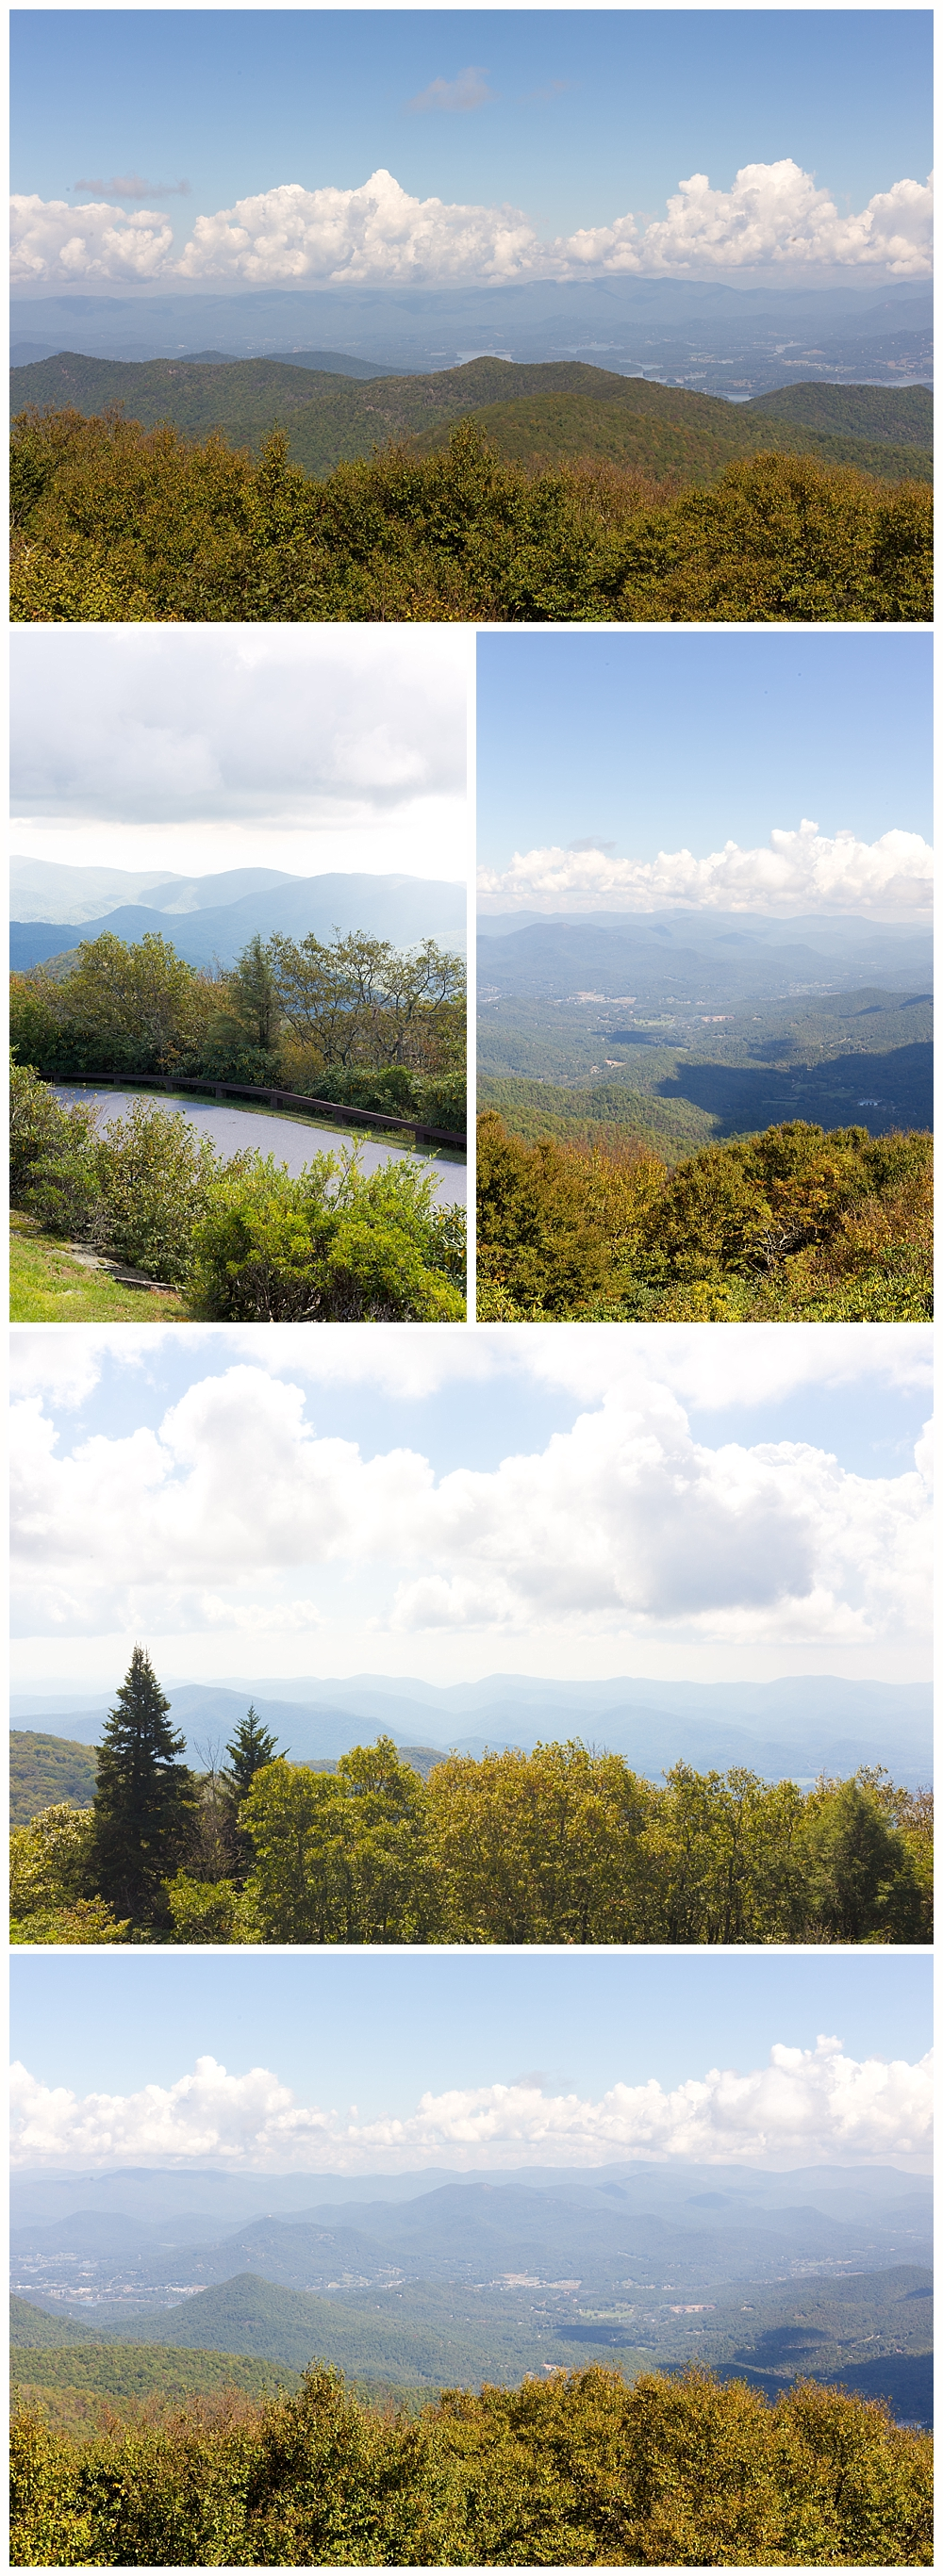 beautiful mountain scenery in Georgia - views from Brasstown Bald